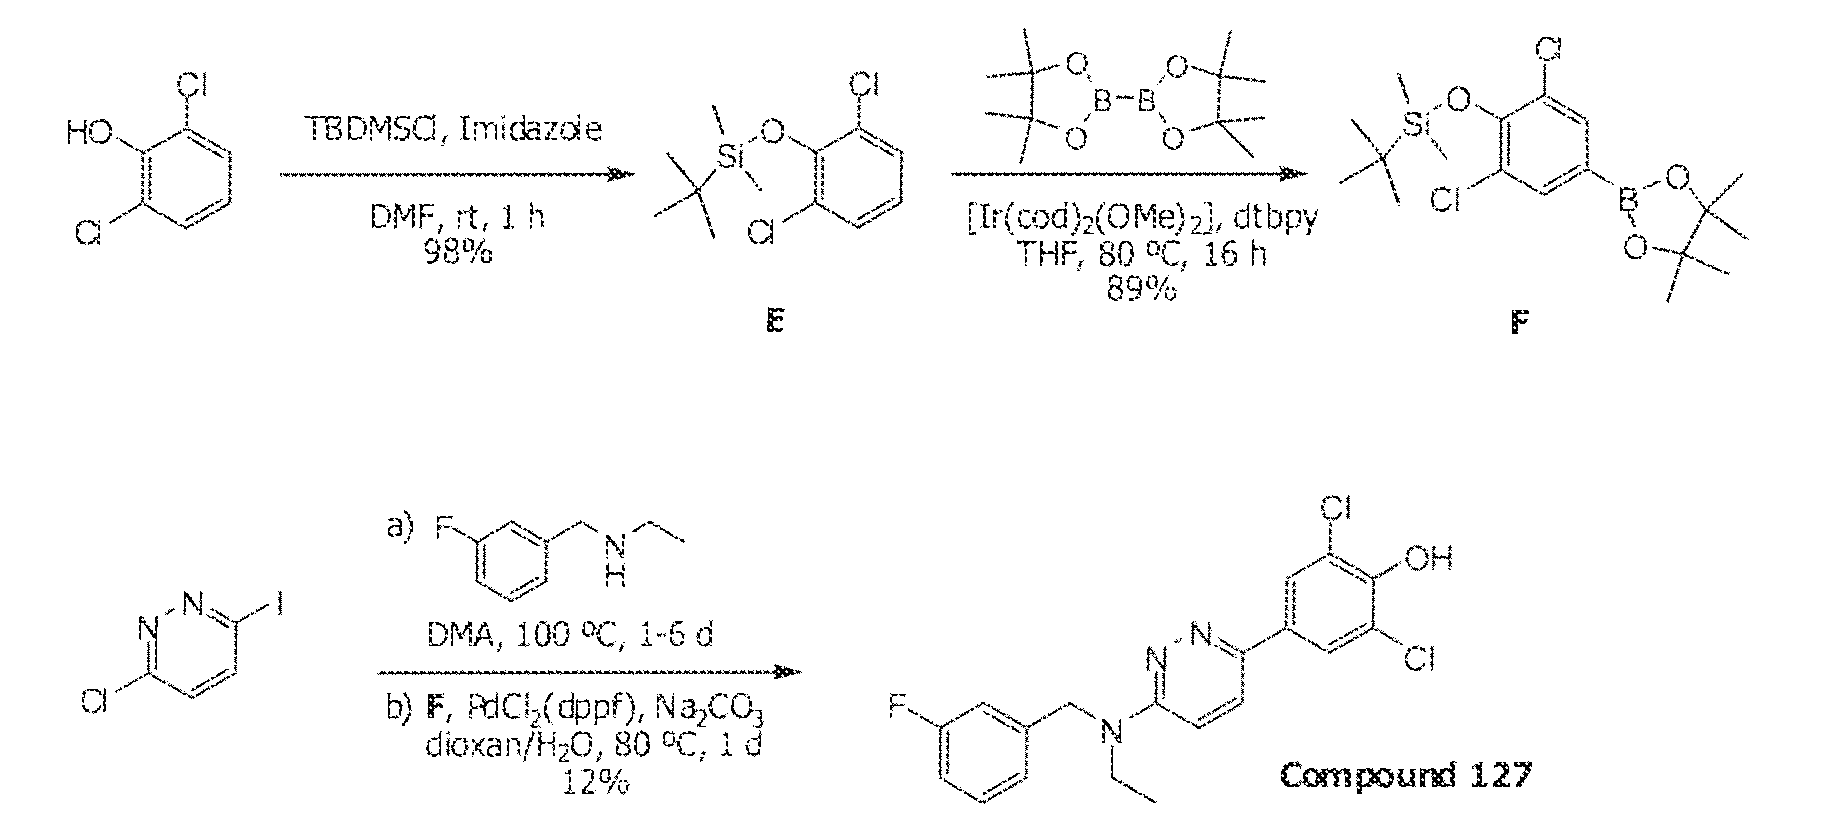 WO2009131947A2 - Compounds, compositions and methods